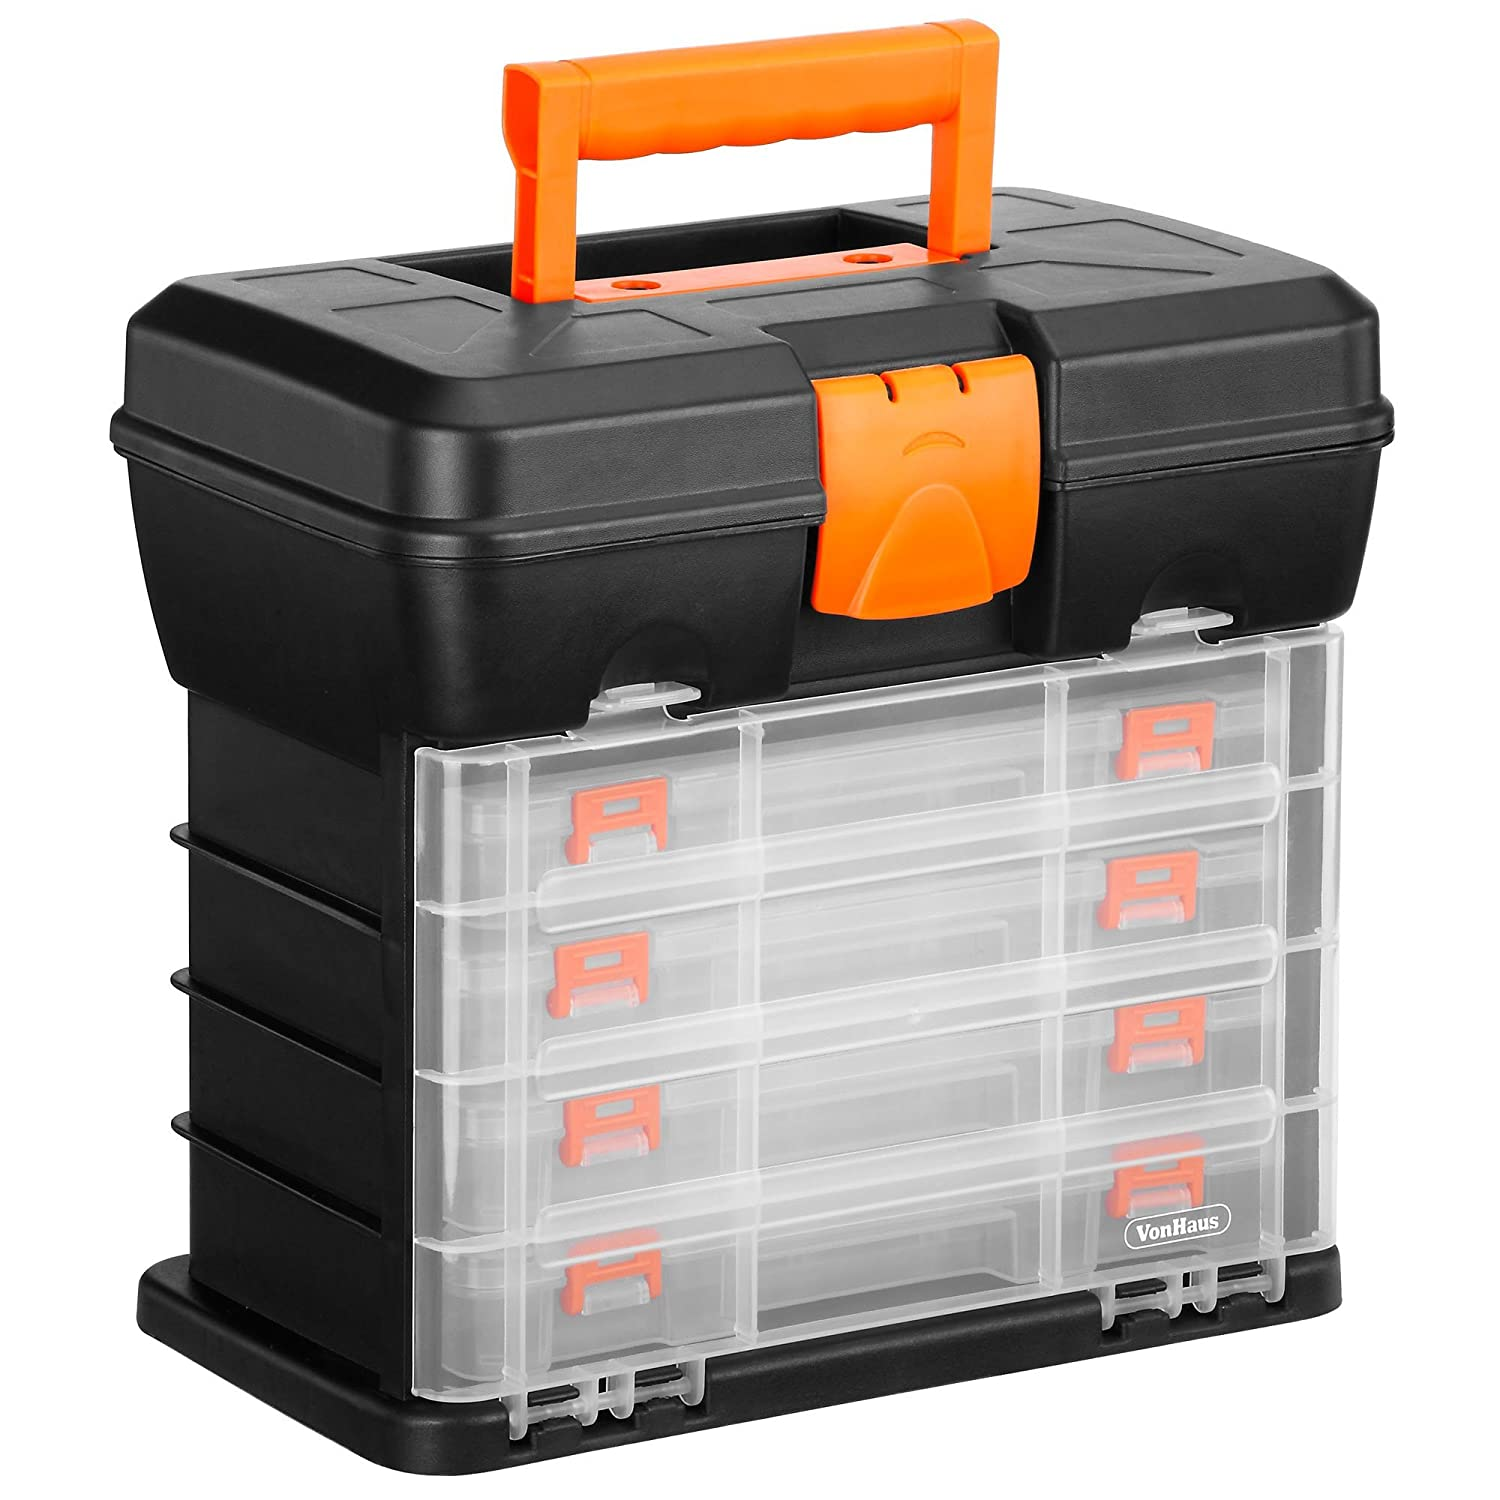 VonHaus Utility Tool Box Organiser Case with 4 Drawers /& Adjustable Dividers